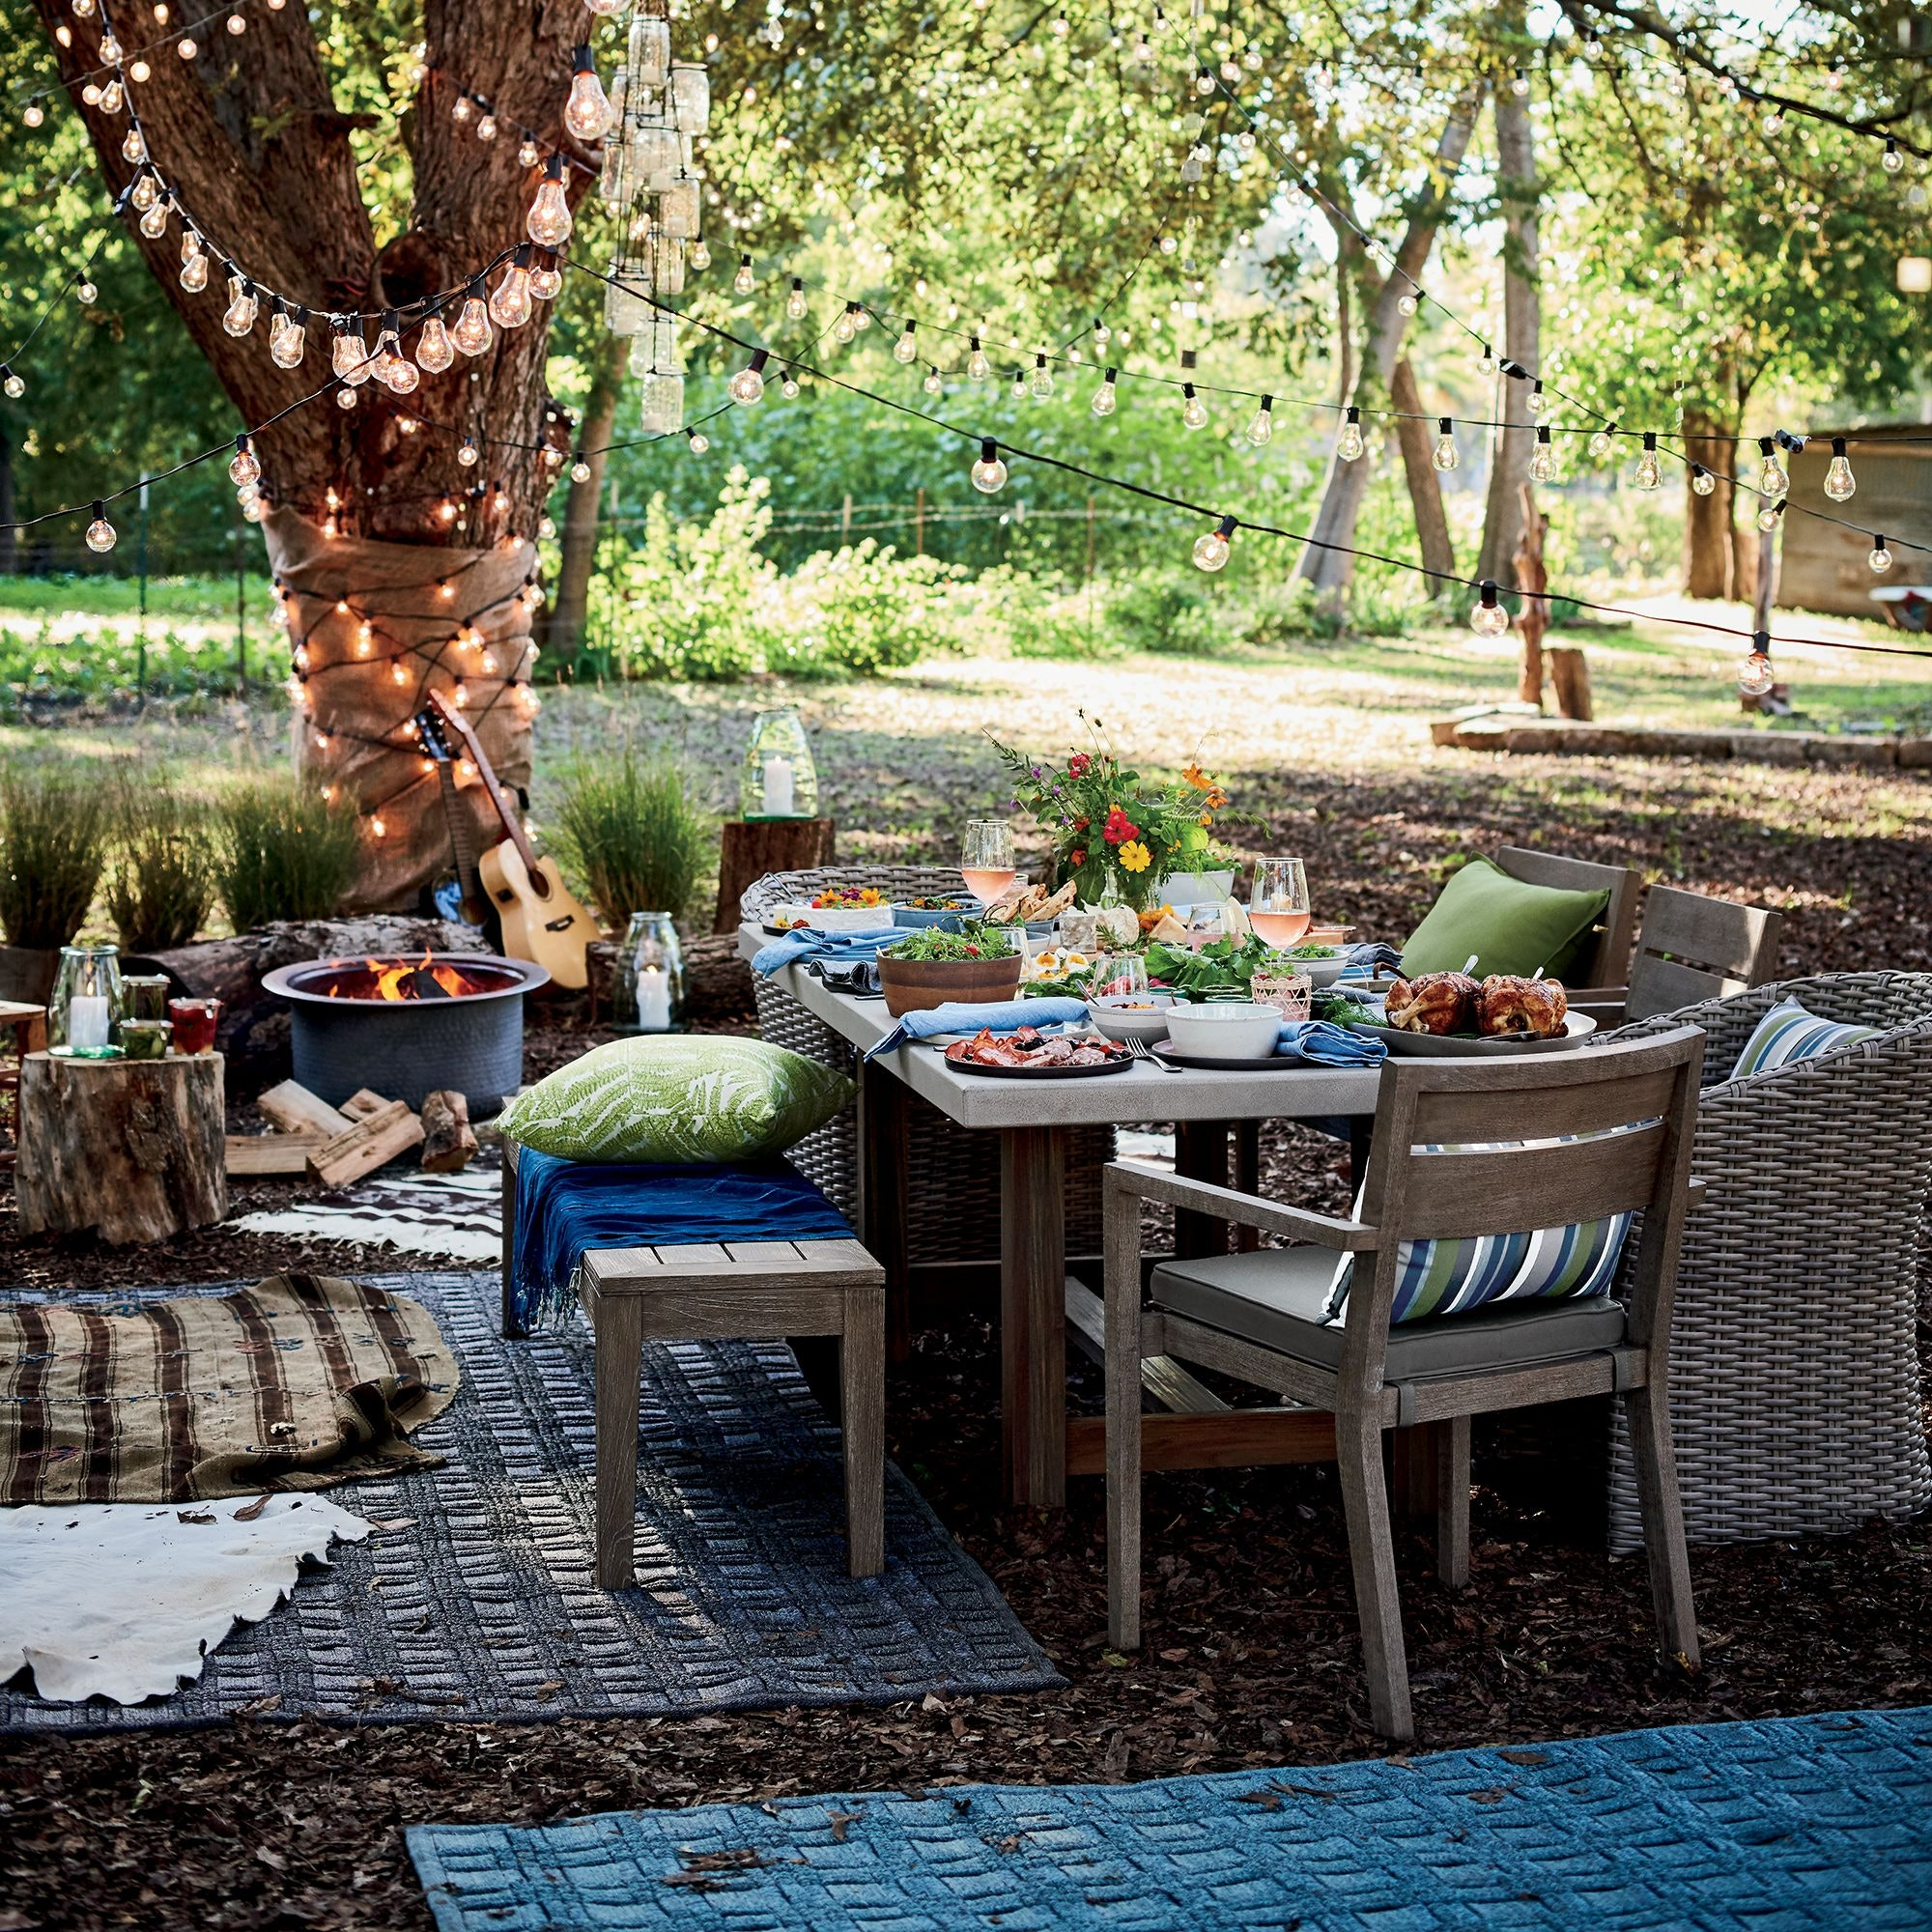 Crate Barrel S Outdoor Furniture Sale Means Up To 20 Percent Off Dining Sets Lounge Chairs More